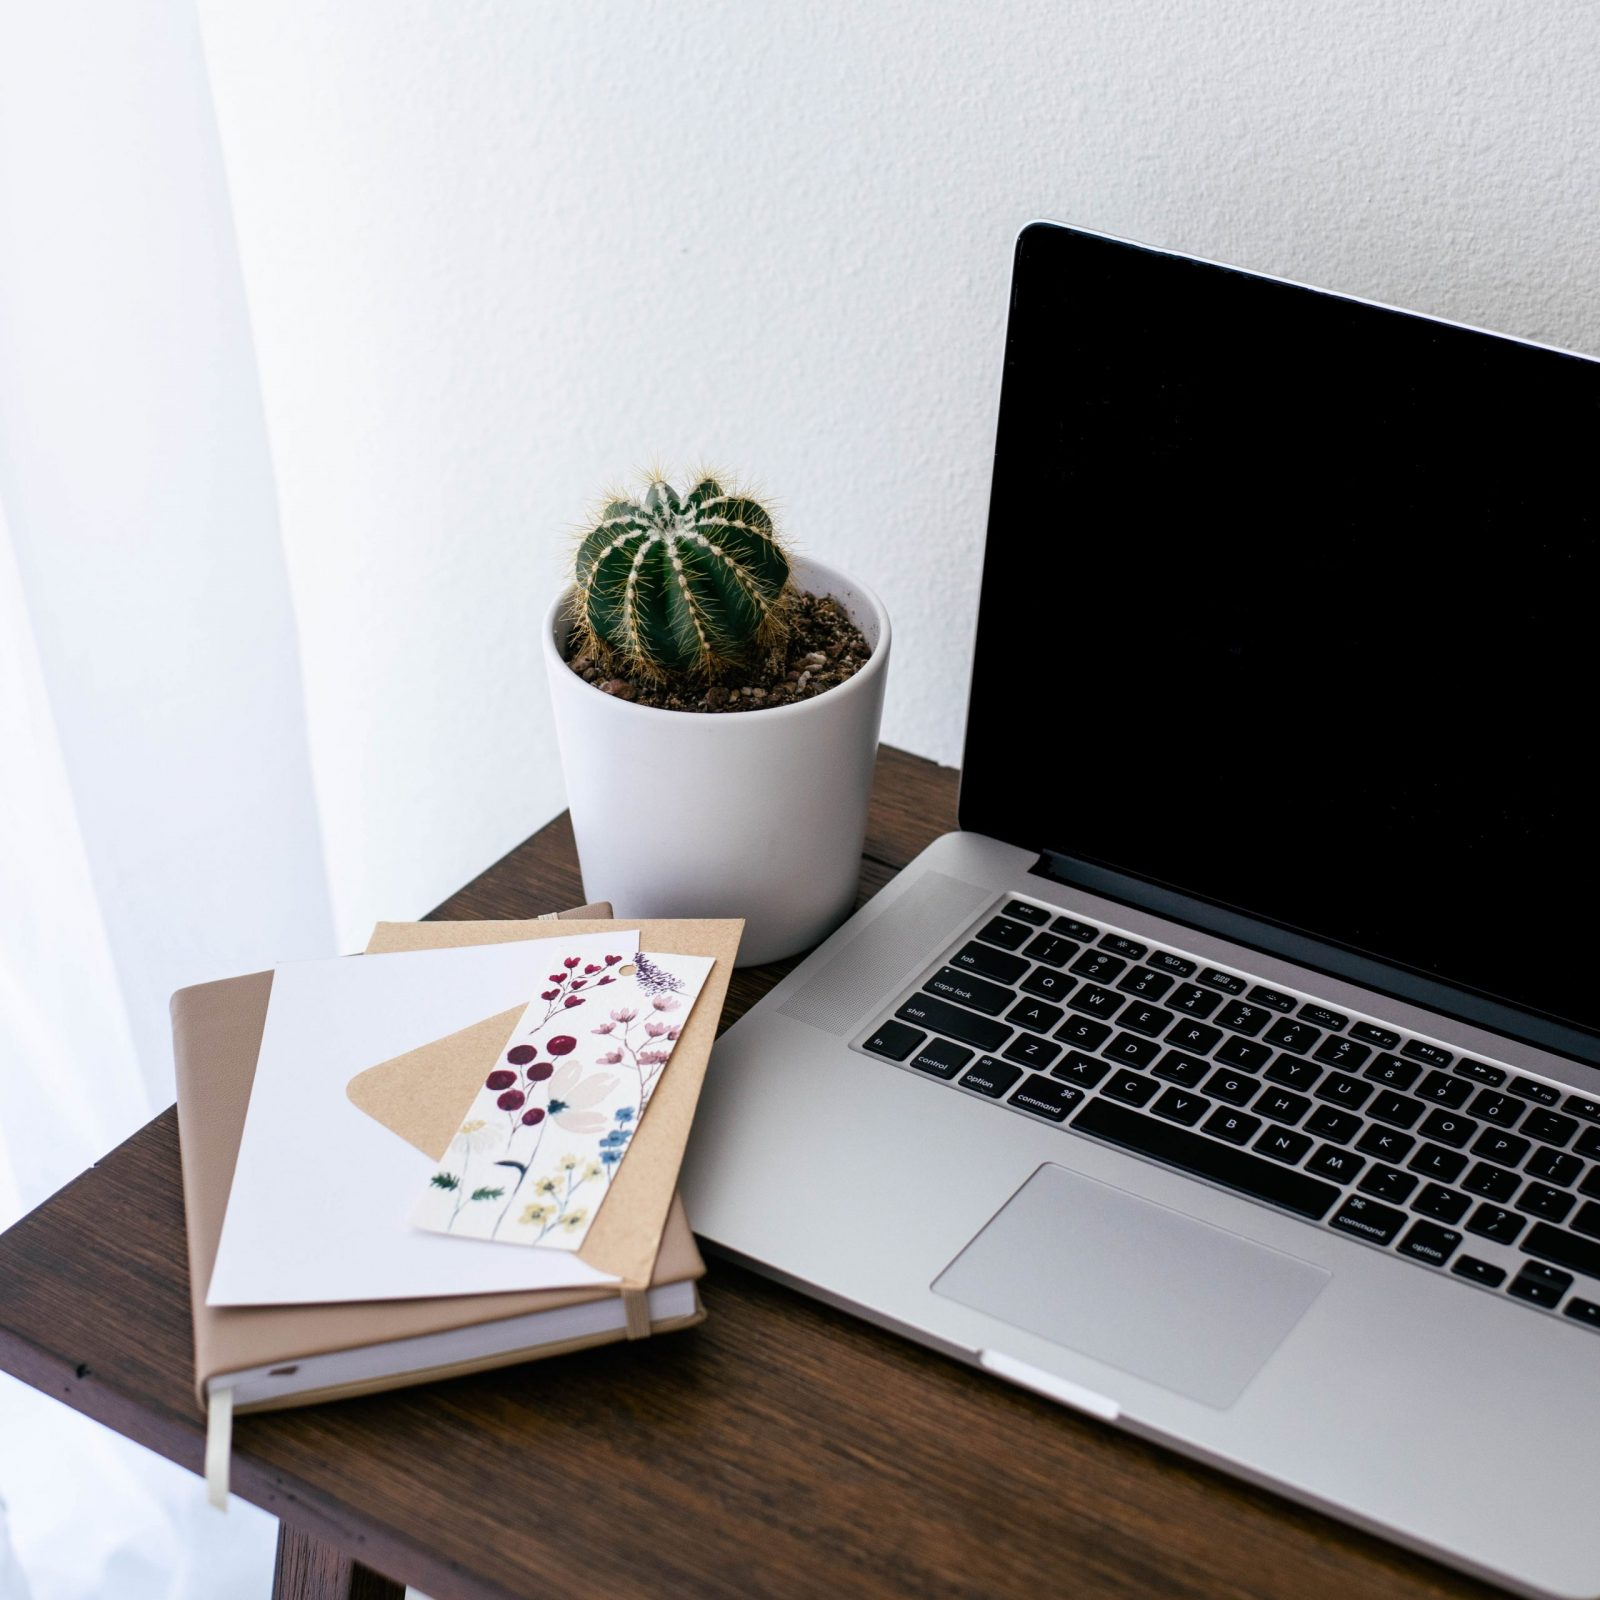 laptop, cactus, and books stacked on a wooden desk